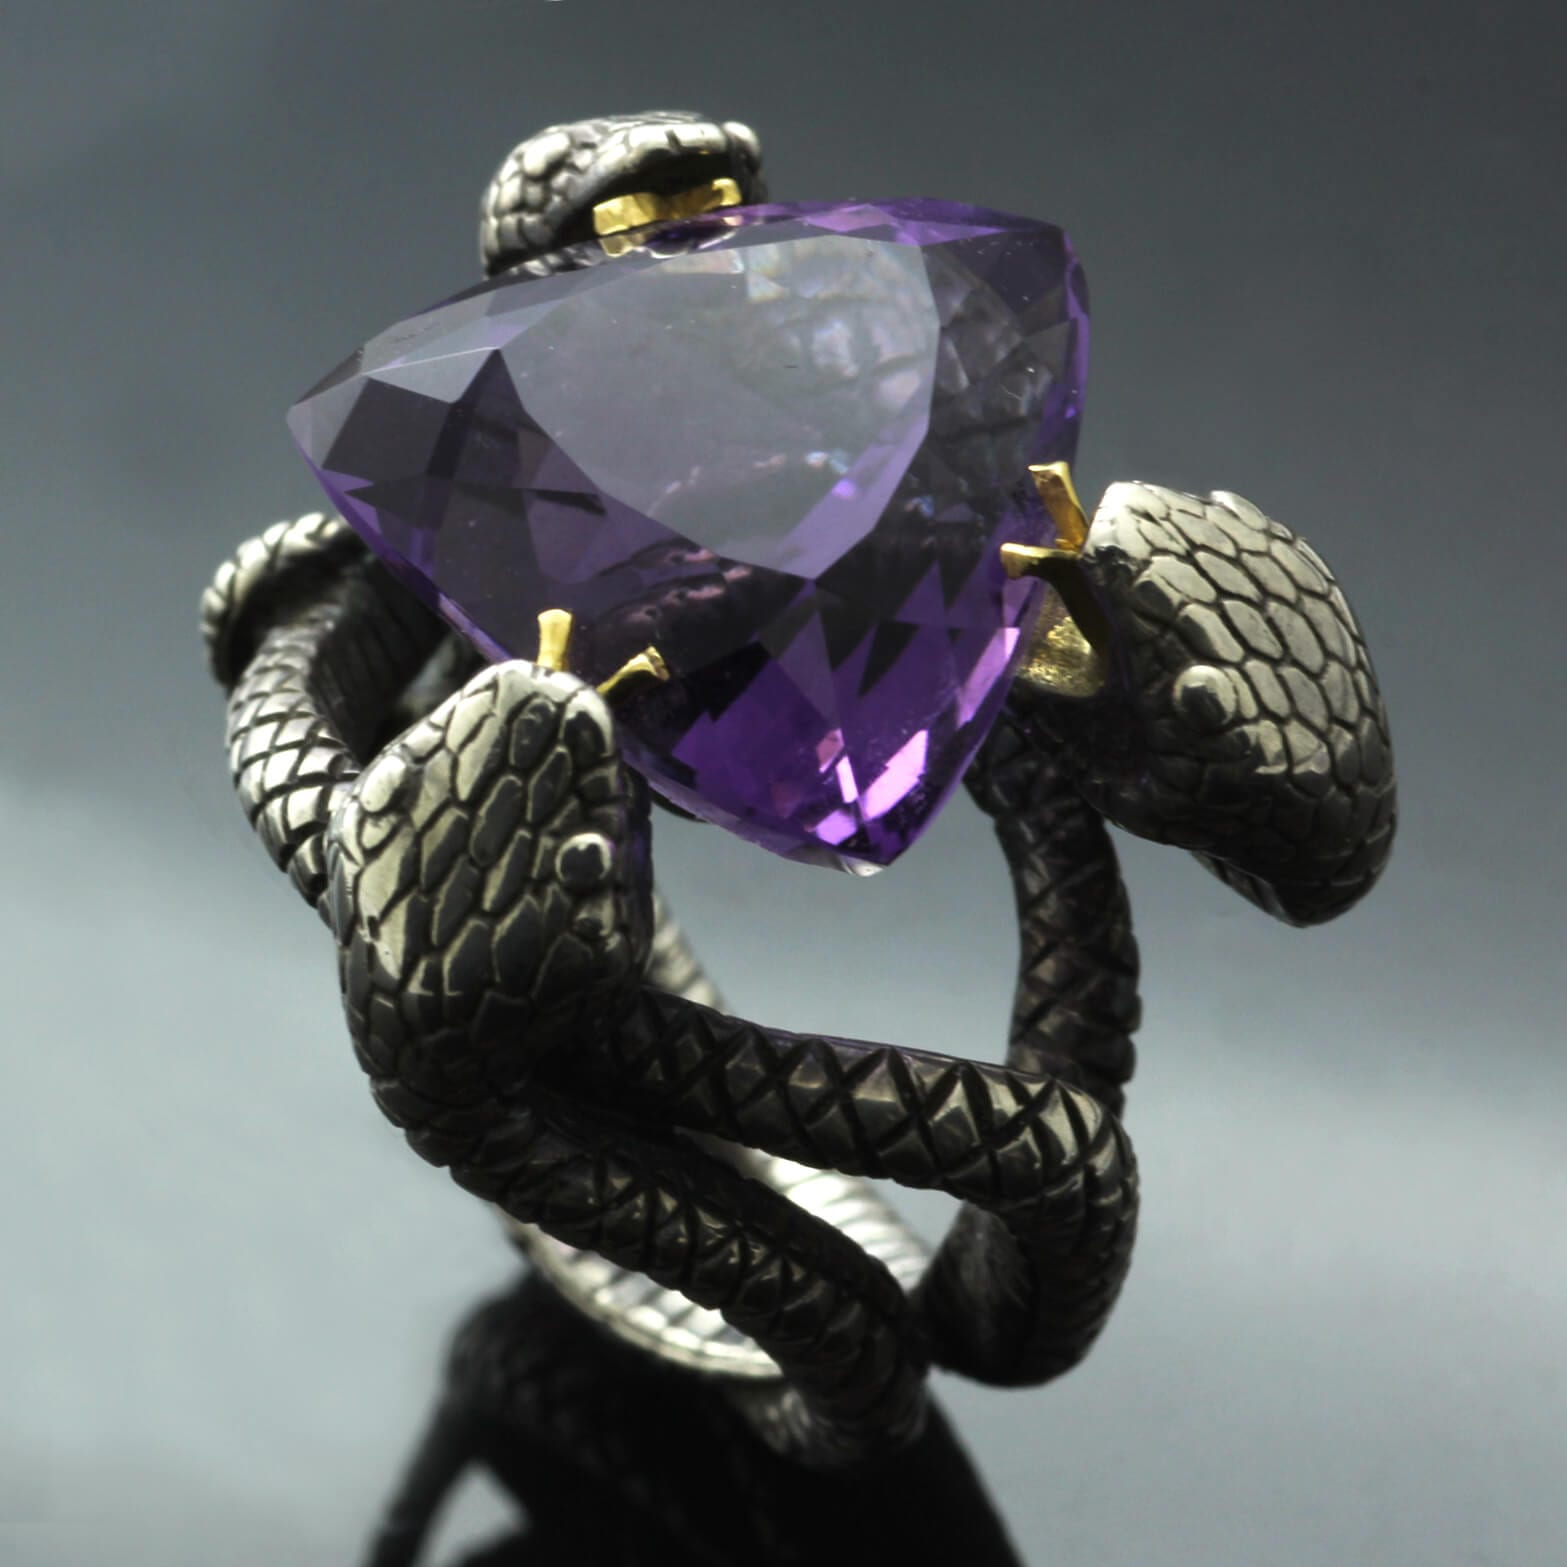 Unique statement ring handmade in Silver and Yellow Gold Trillion cut Amethyst gemstone